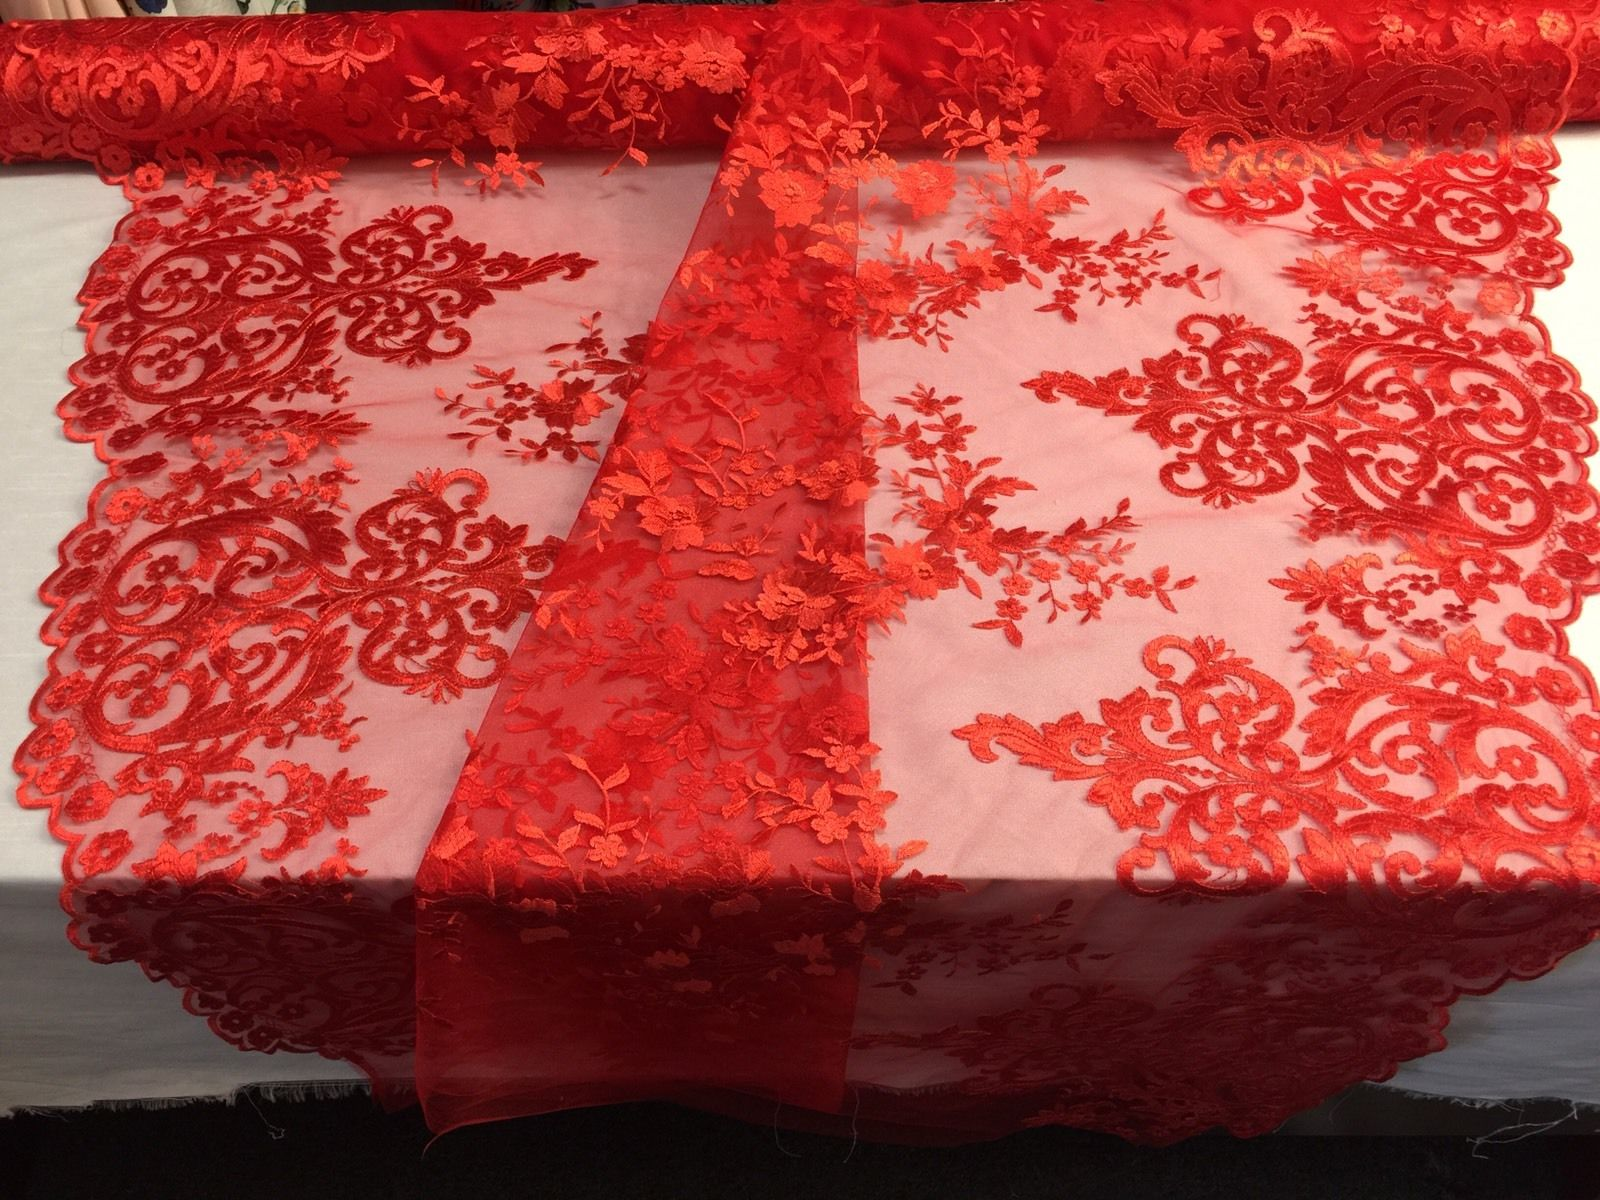 Red Embroidered Lace Fabric On A 2 Way Stretch - Wedding Dress - By The Yard - KINGDOM OF FABRICS